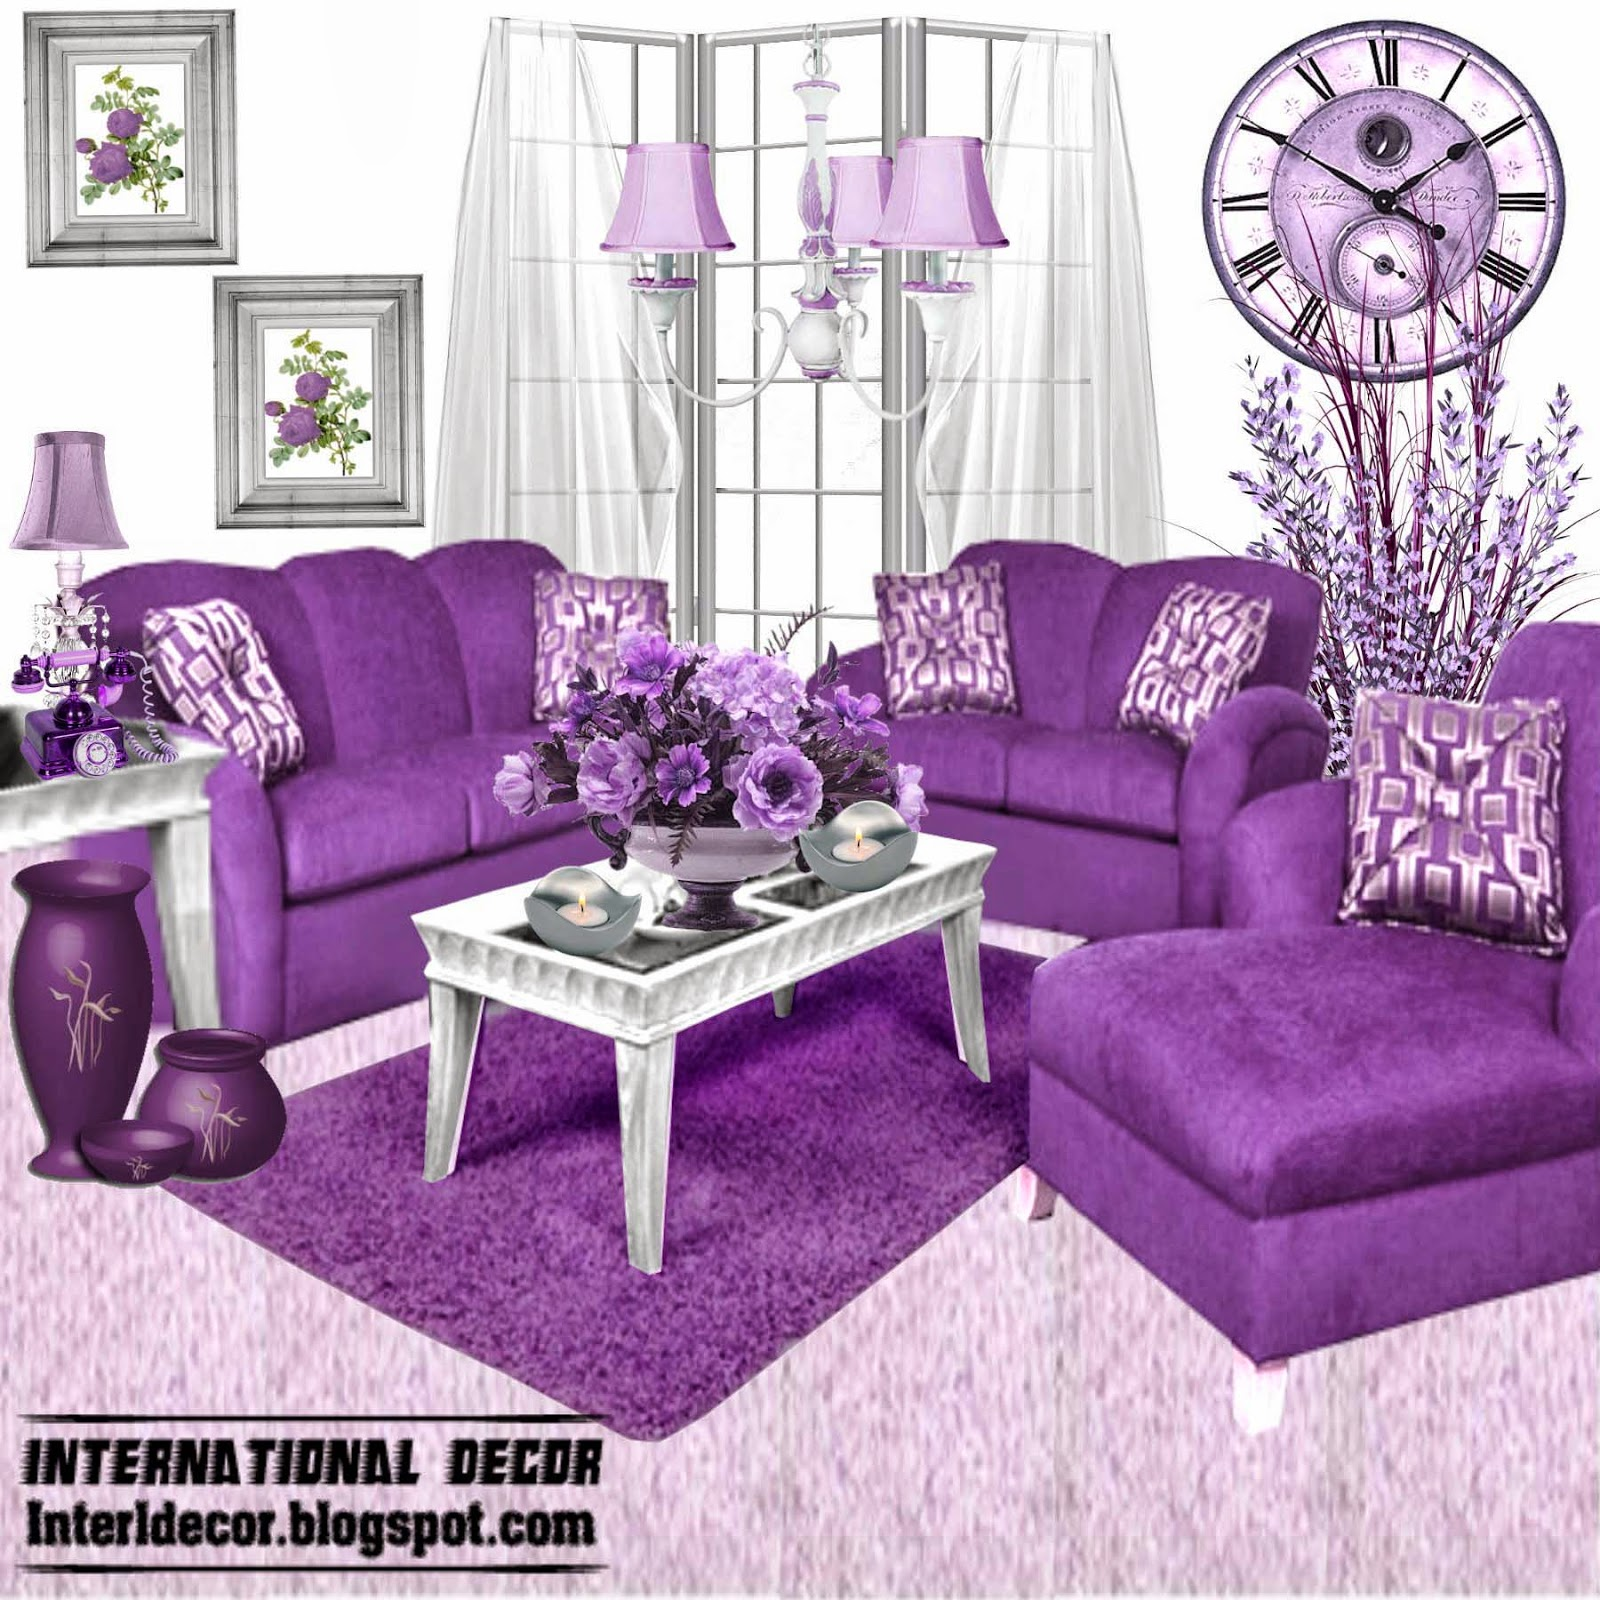 Luxury purple furniture sets sofas chairs for living Purple living room